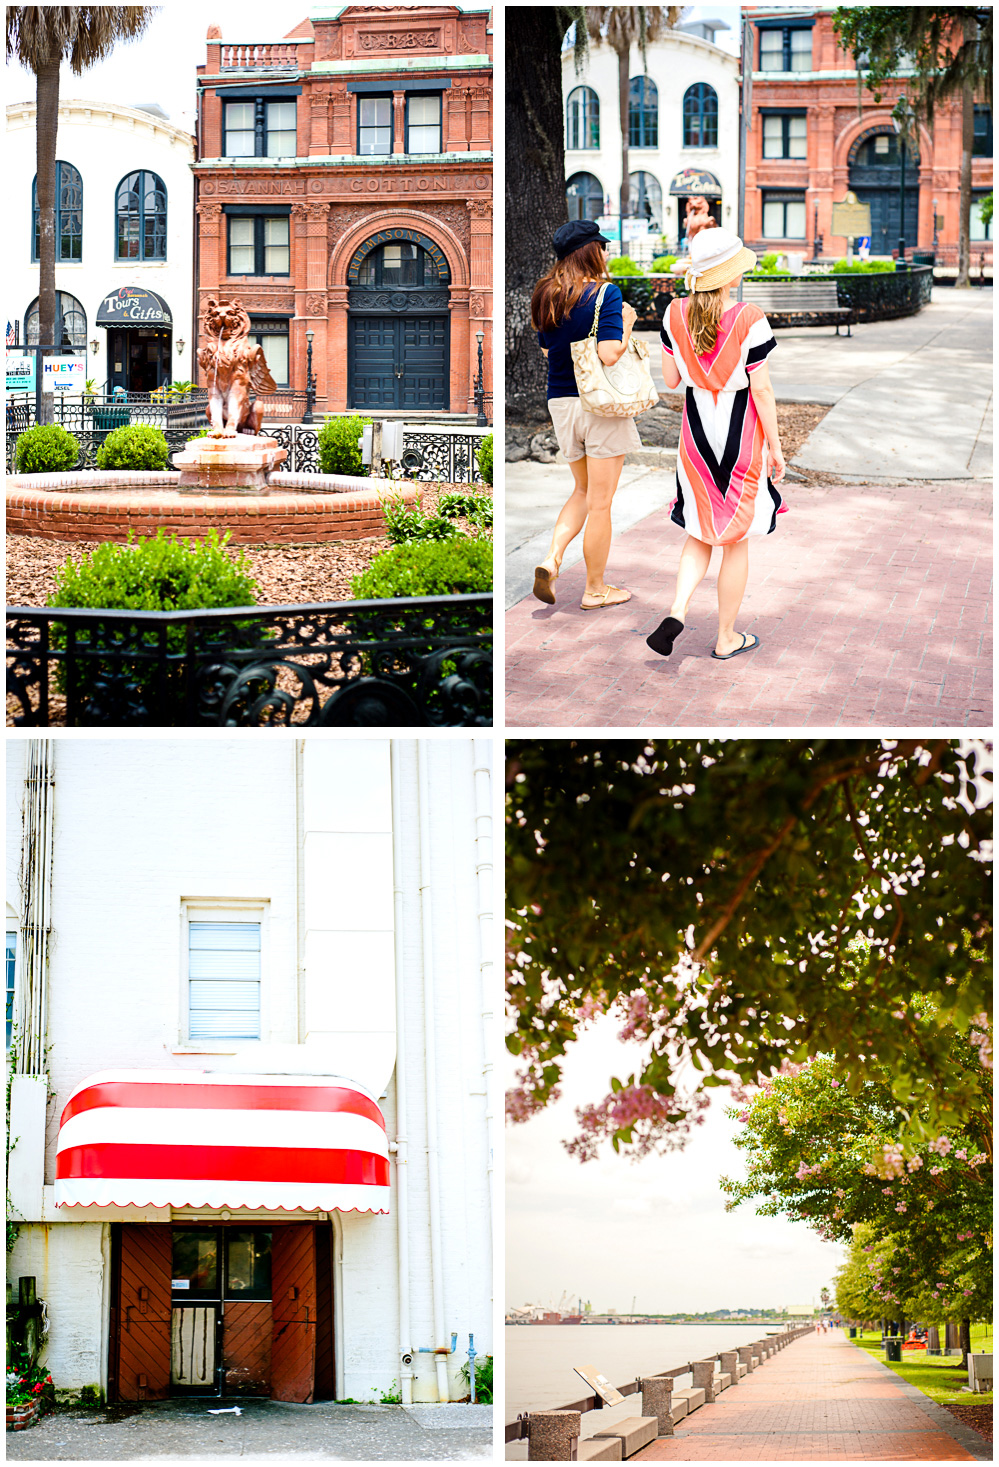 a bunch of travel photos of scenery we saw on our first day in Savannah